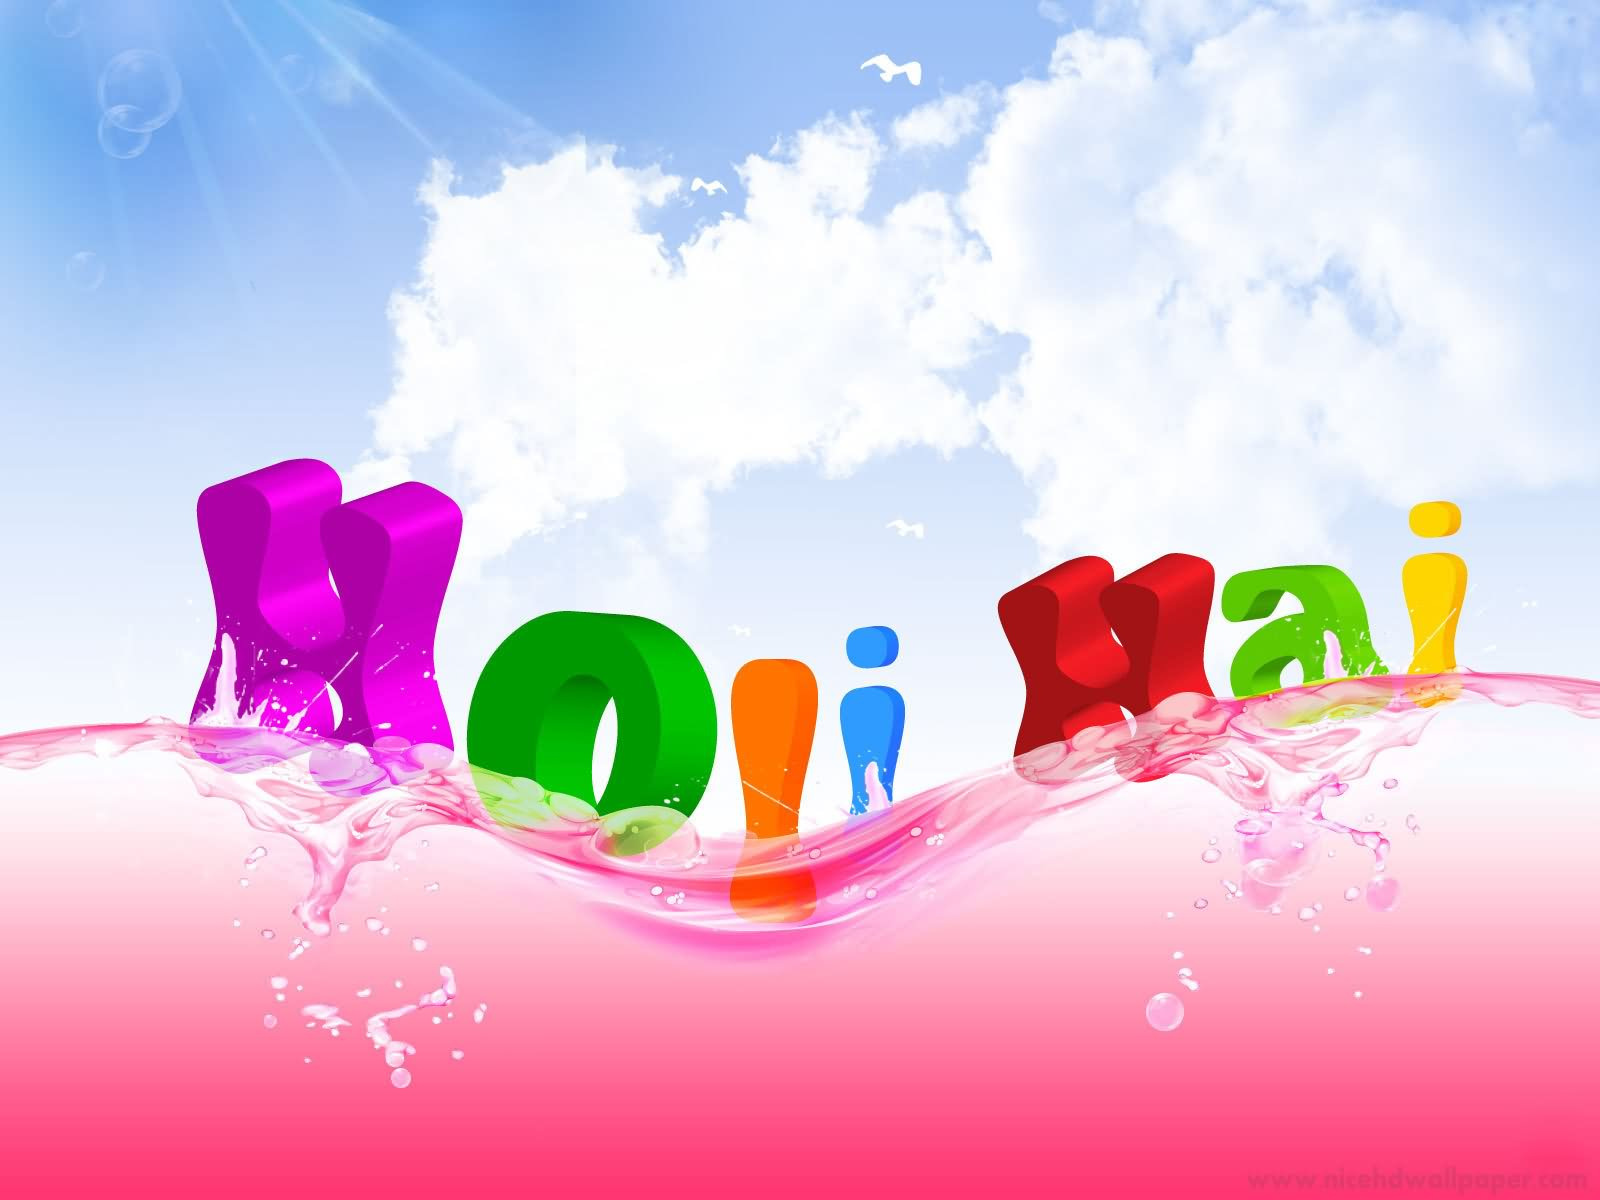 {3D*} Happy Holi 2019 HD Wallpapers, Greeting, Images For Kids